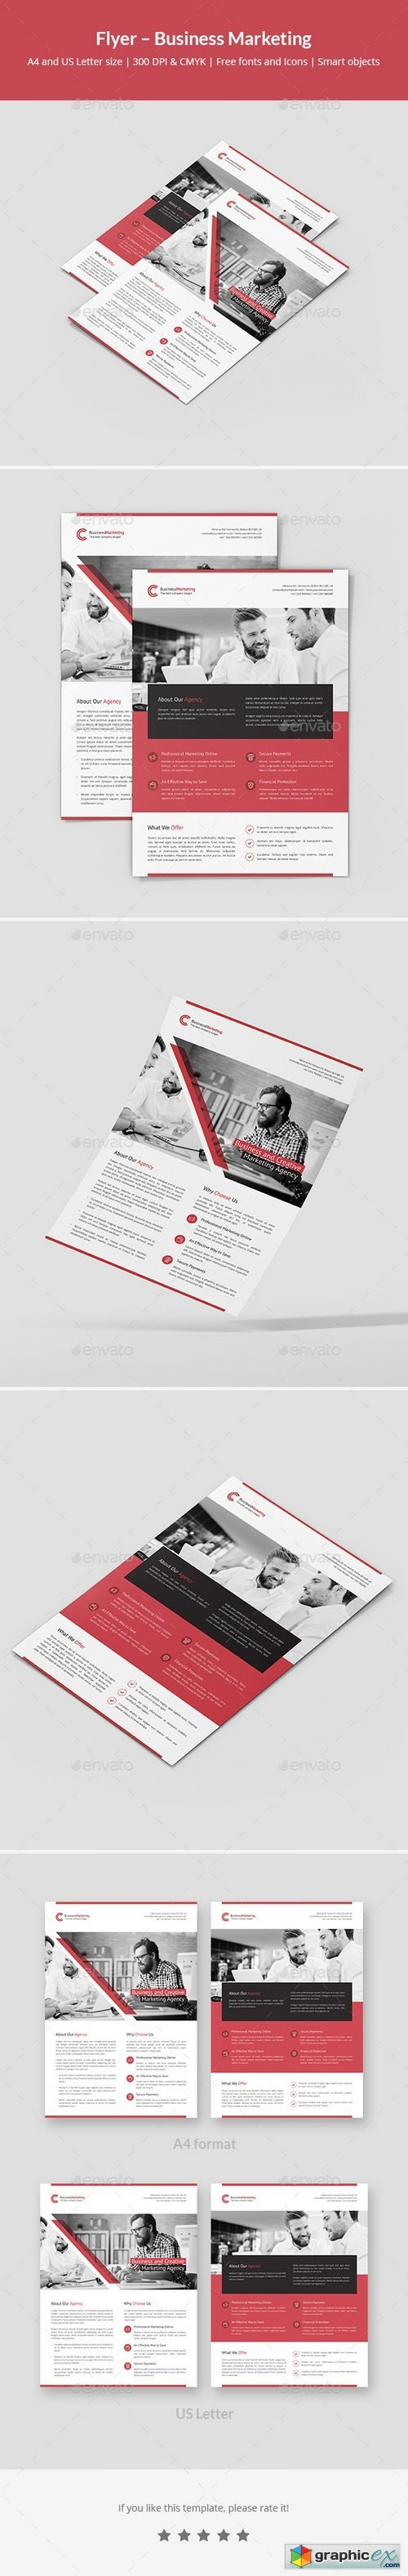 Flyer � Business Marketing